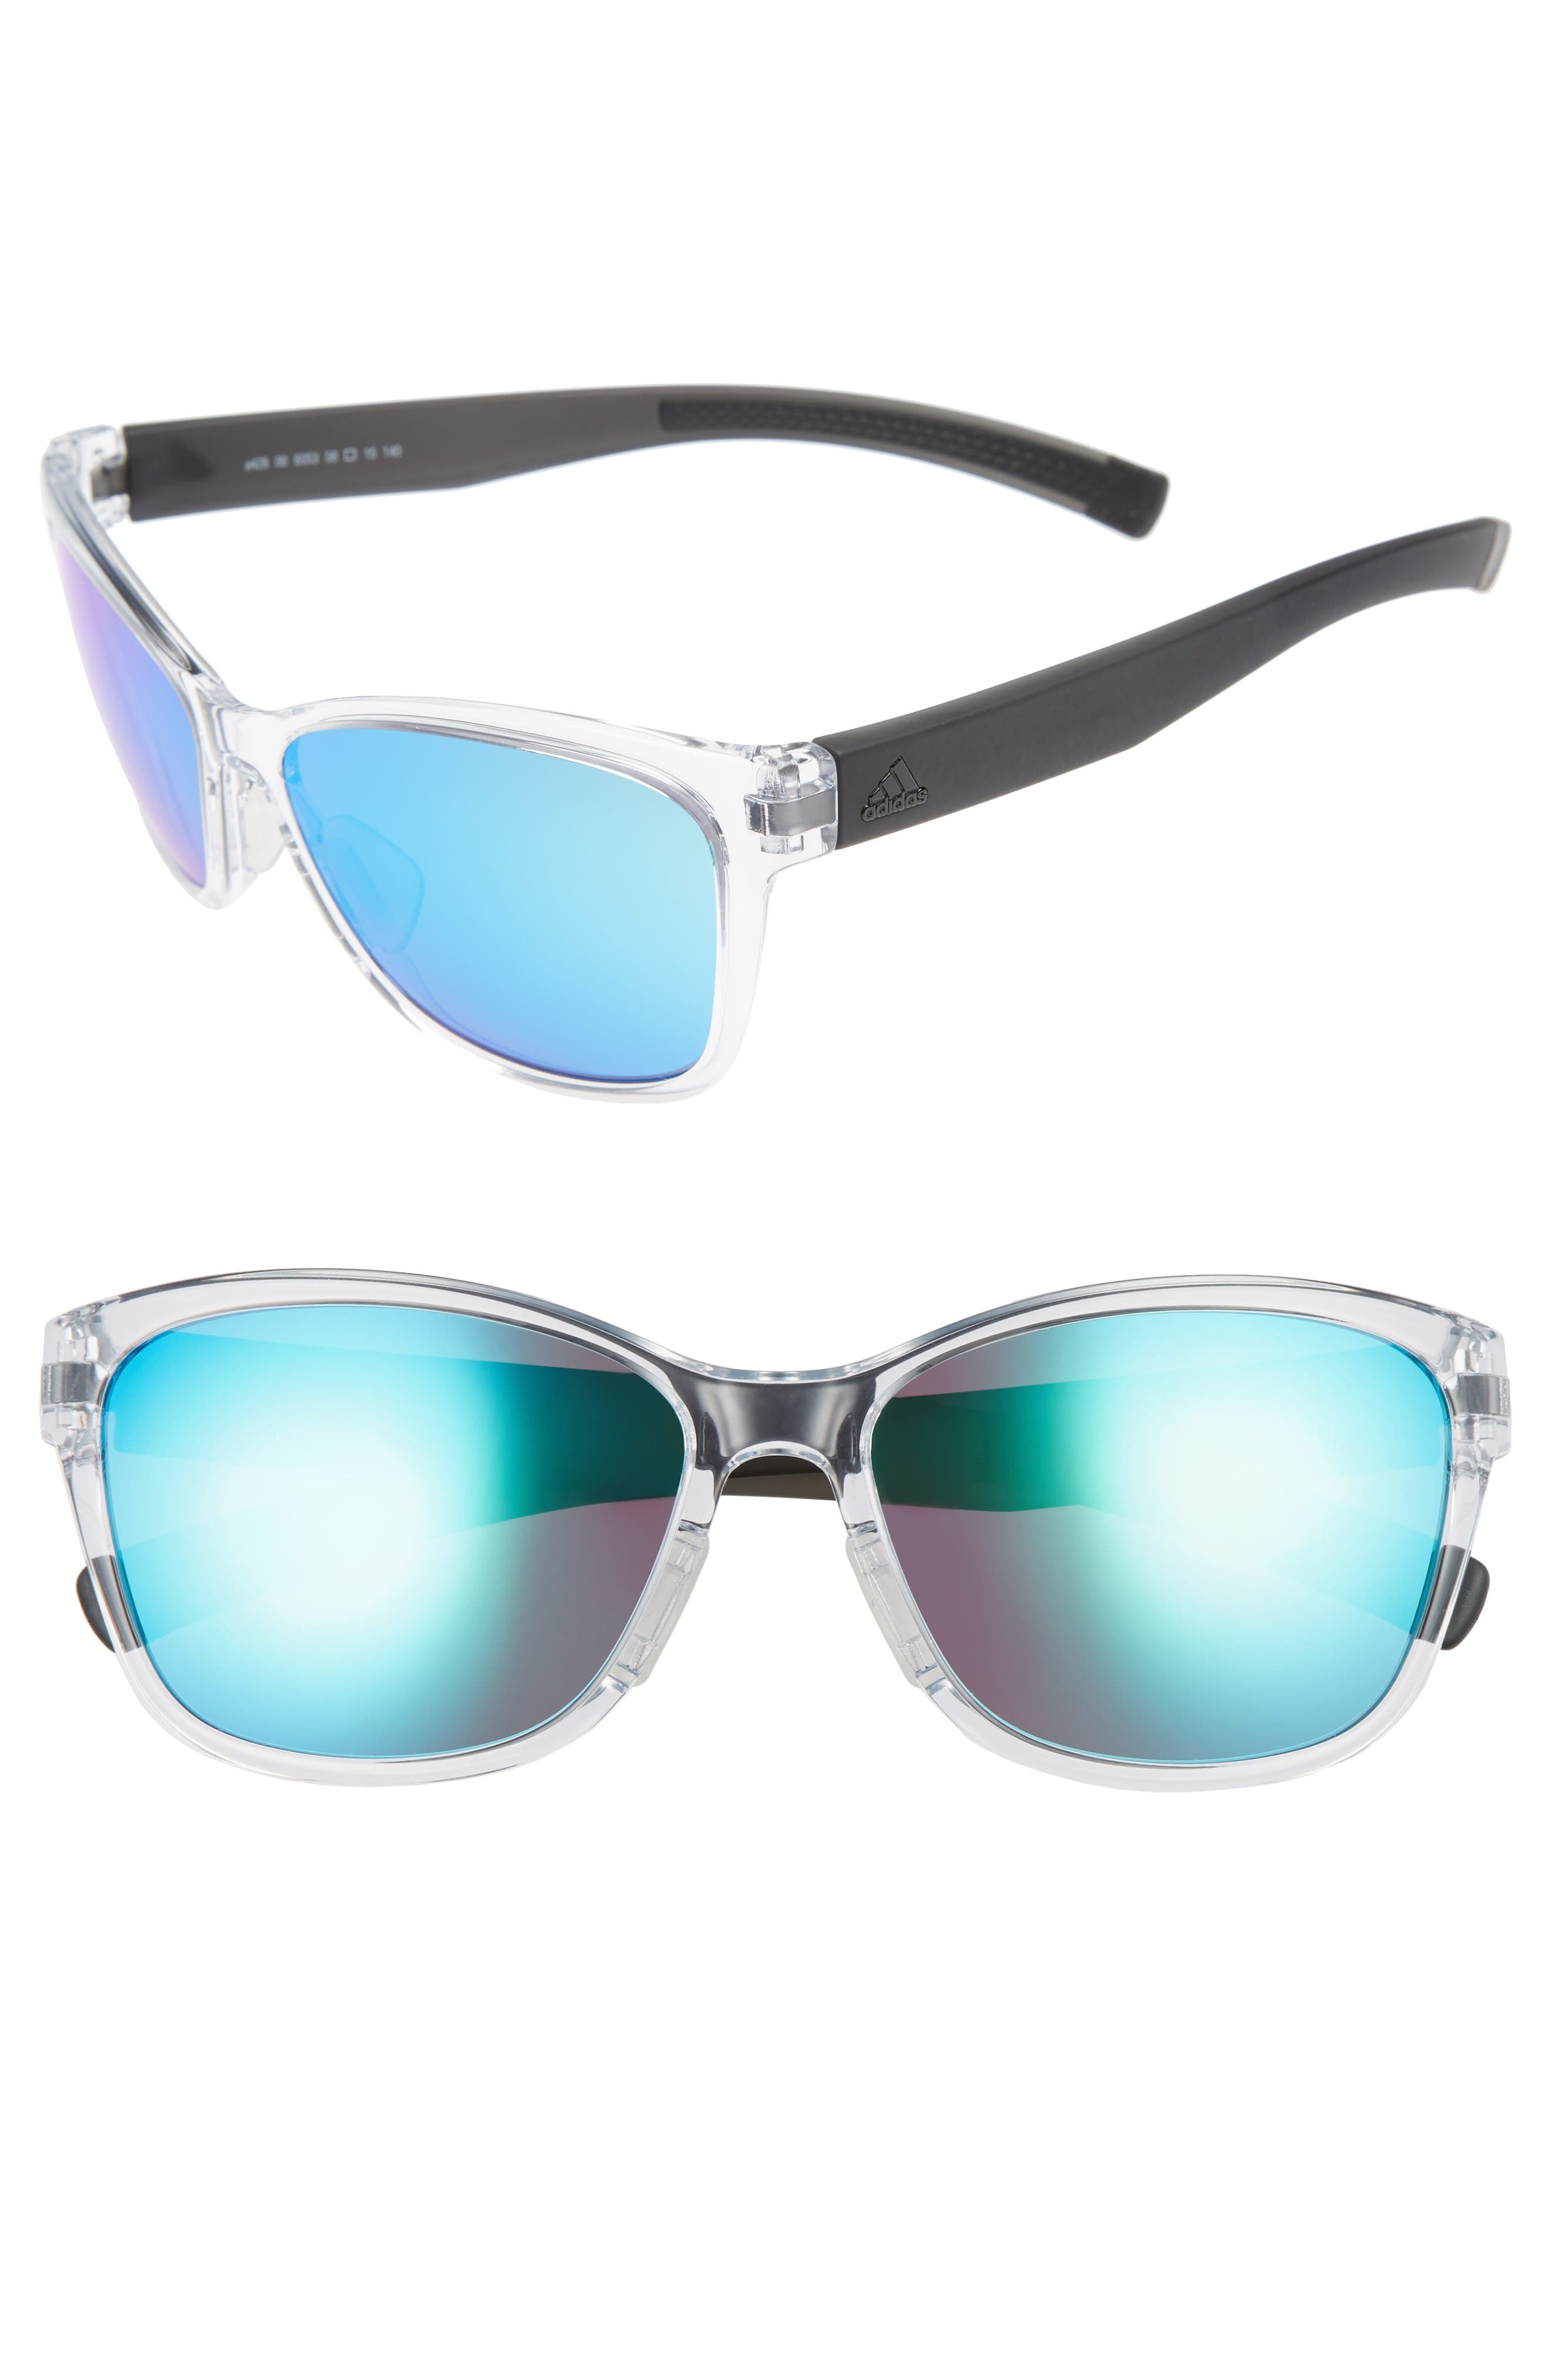 Excalate 58mm Mirrored Sunglasses,                         Main,                         color, Crystal Clear/ Blue Mirror